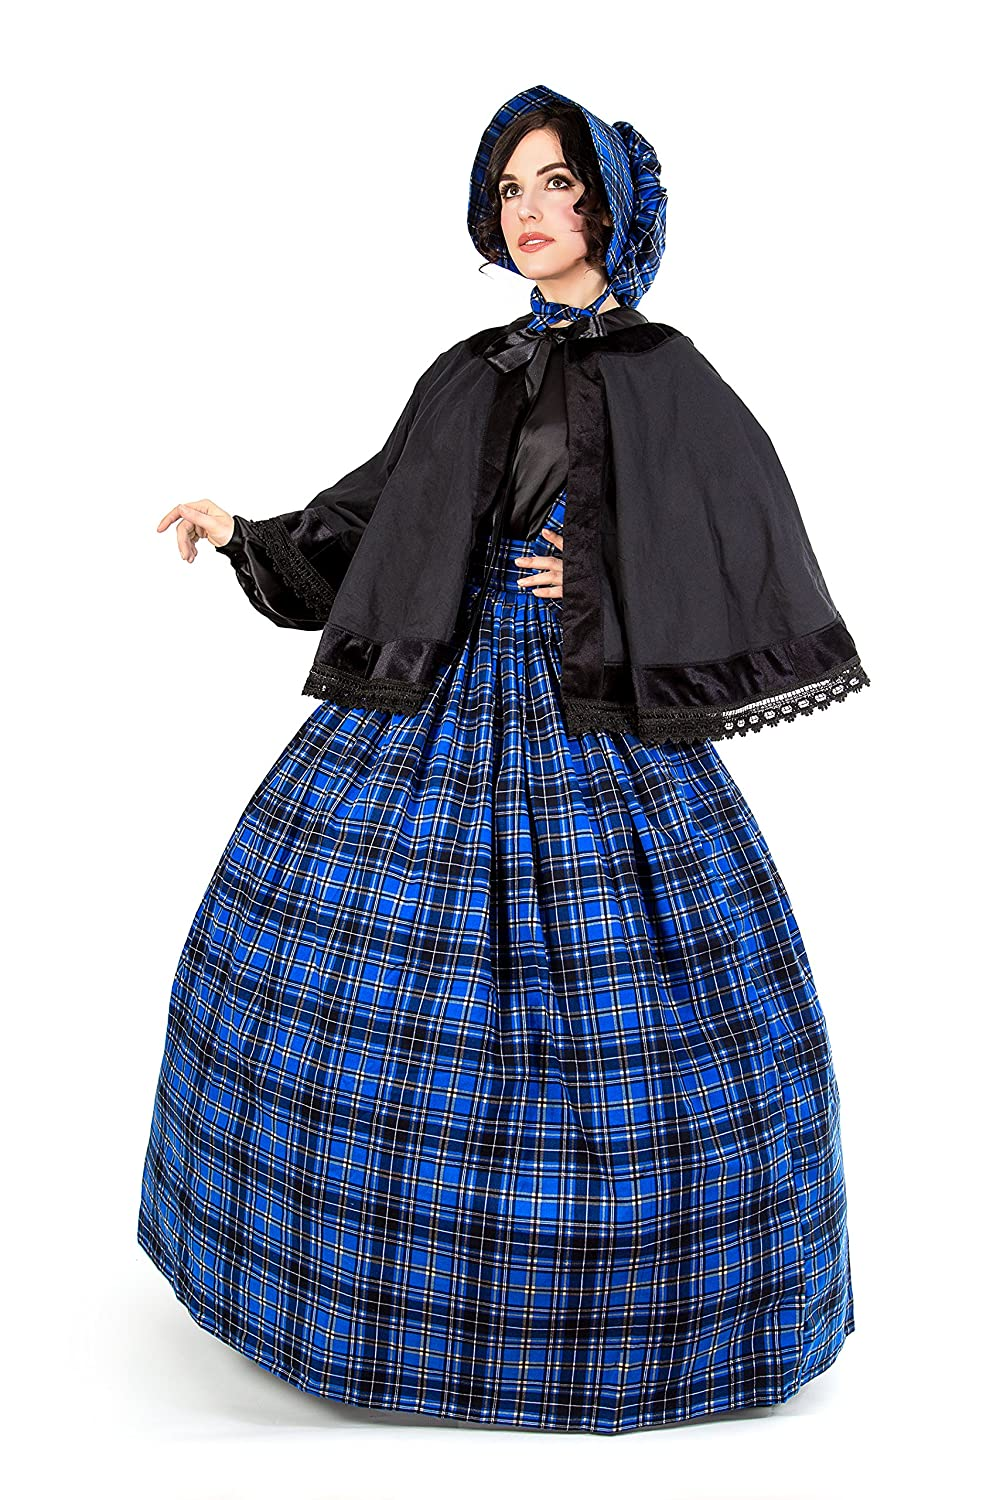 Victorian Dresses | Victorian Ballgowns | Victorian Clothing Reminisce Plaid Tartan Dickens Civil War Costume $89.99 AT vintagedancer.com